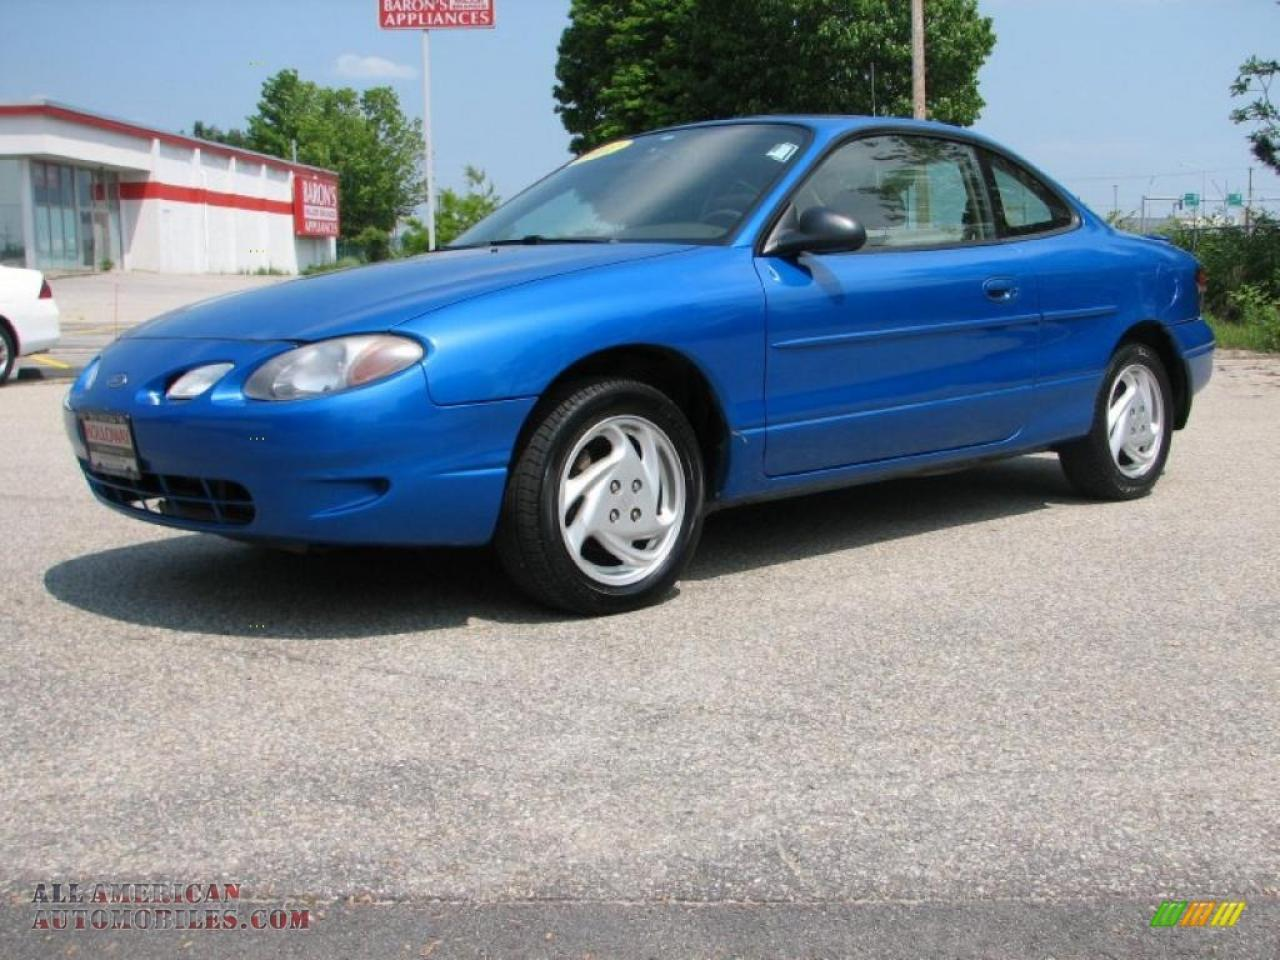 2001 Ford Escort Information And Photos Zombiedrive